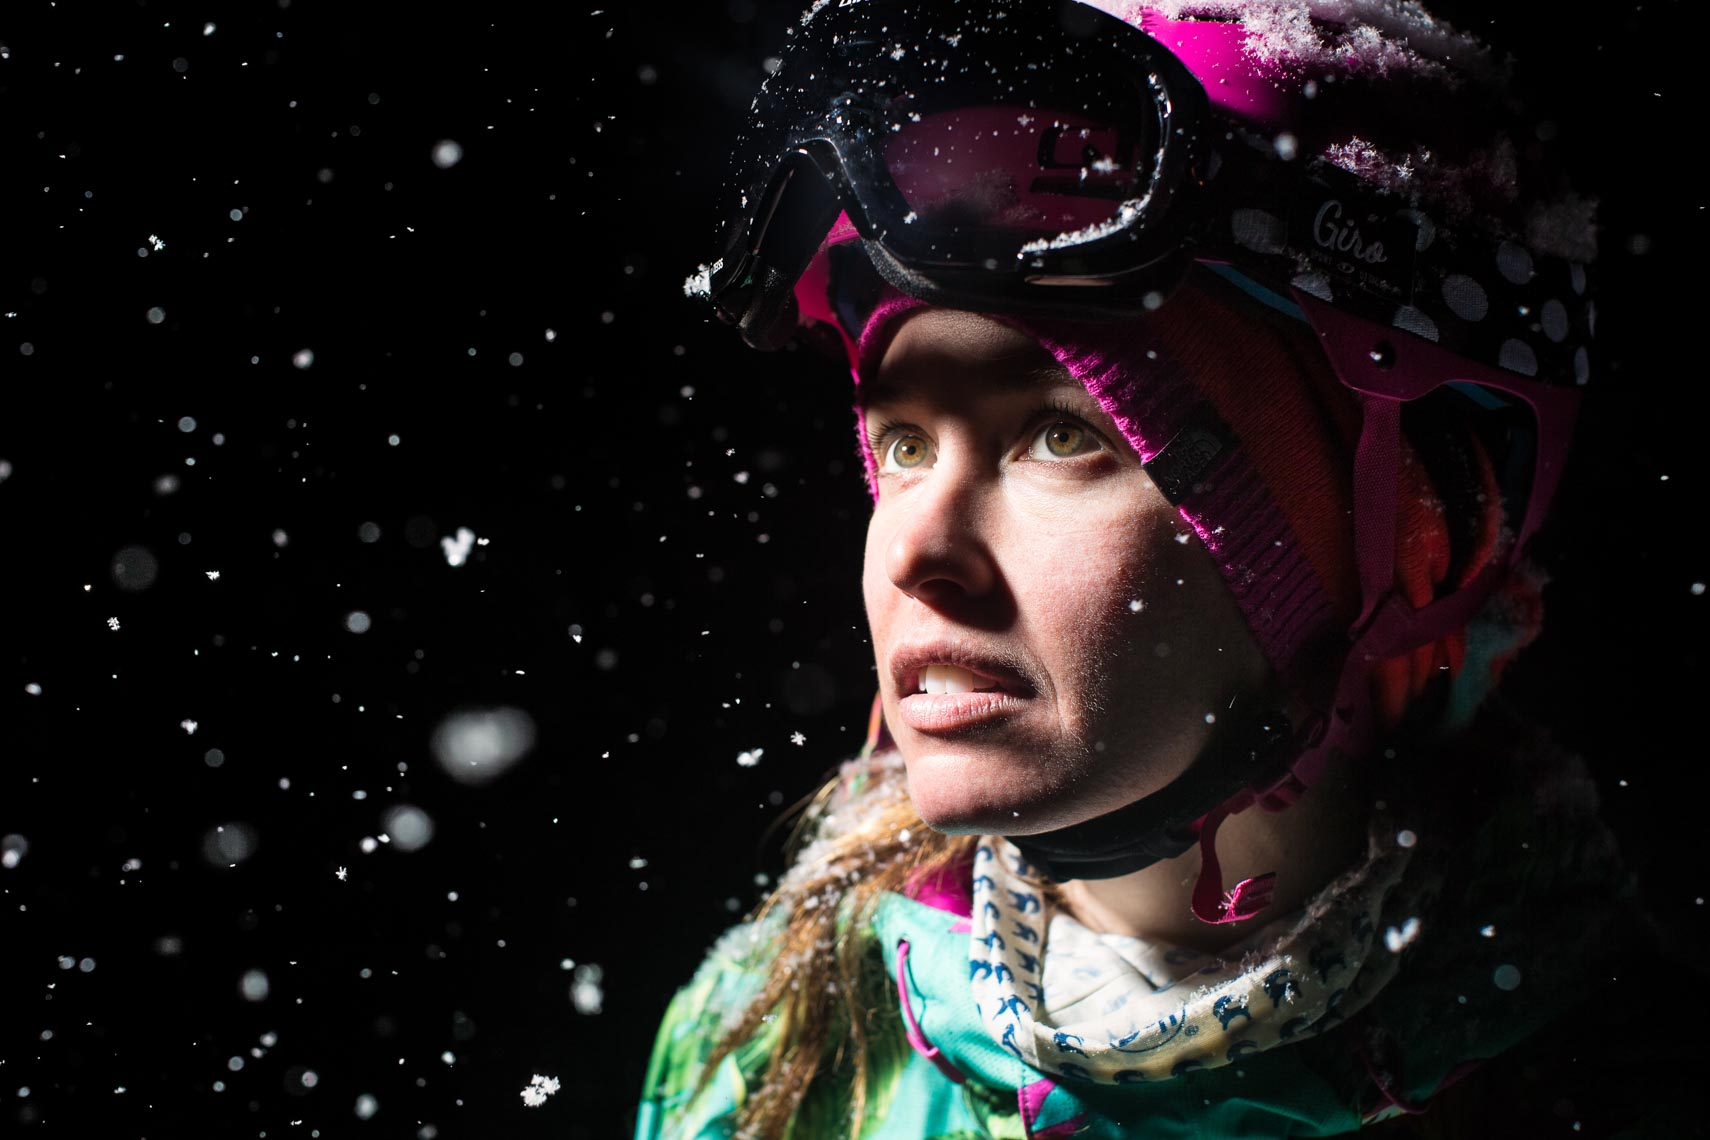 Giro helmet portrait of female ski athlete in Japan with snowflakes